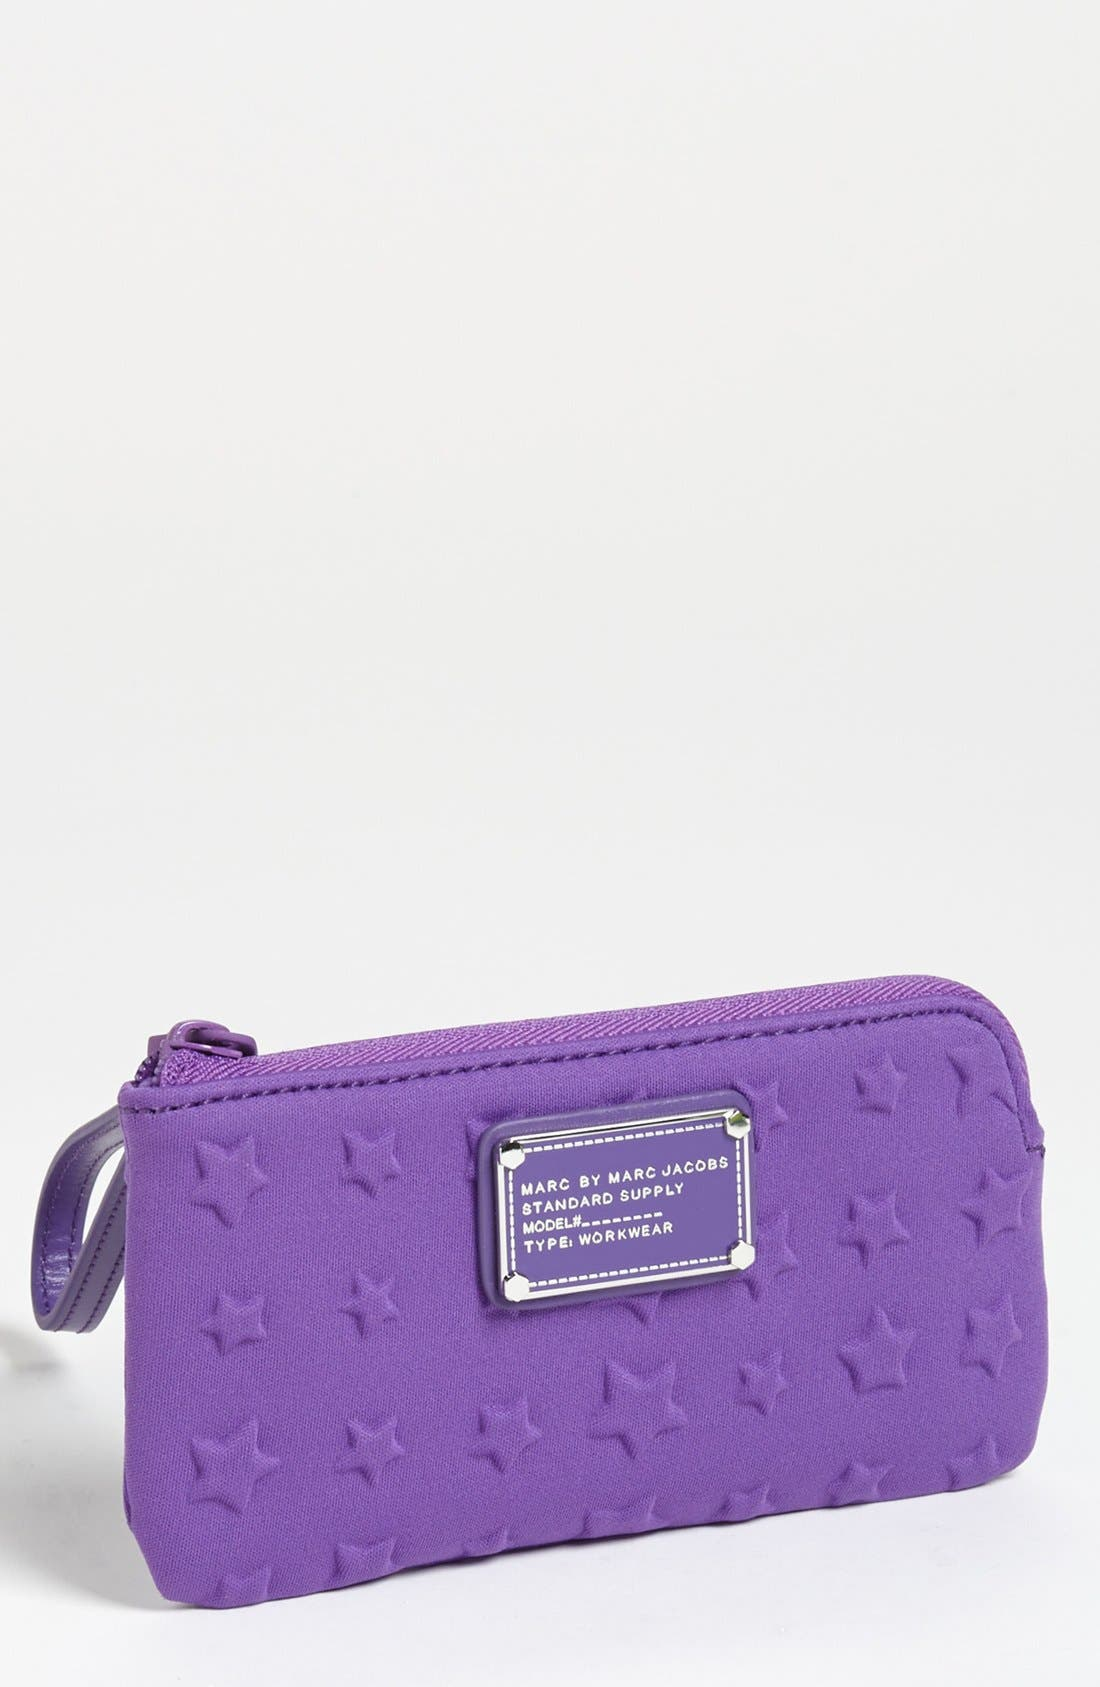 Main Image - MARC BY MARC JACOBS 'Reluctant Stars' Phone Wristlet